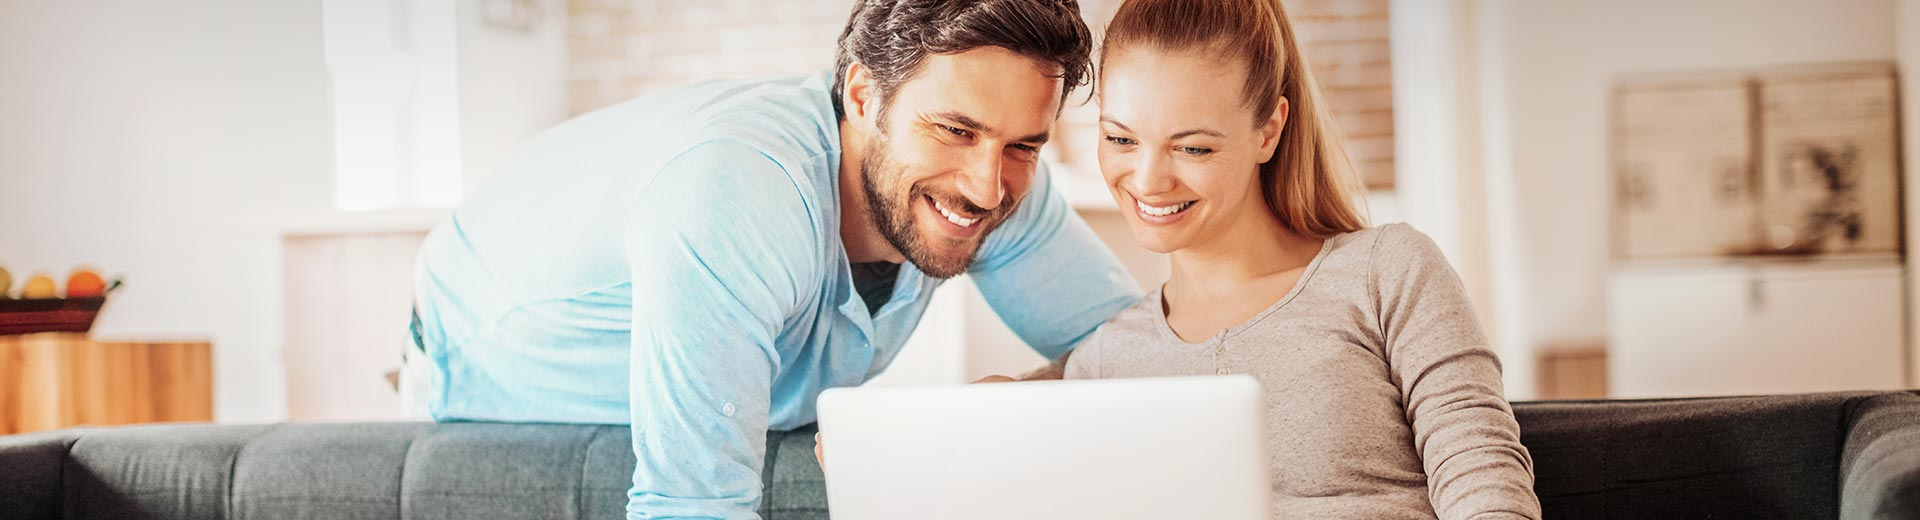 Happy young couple using laptop at home